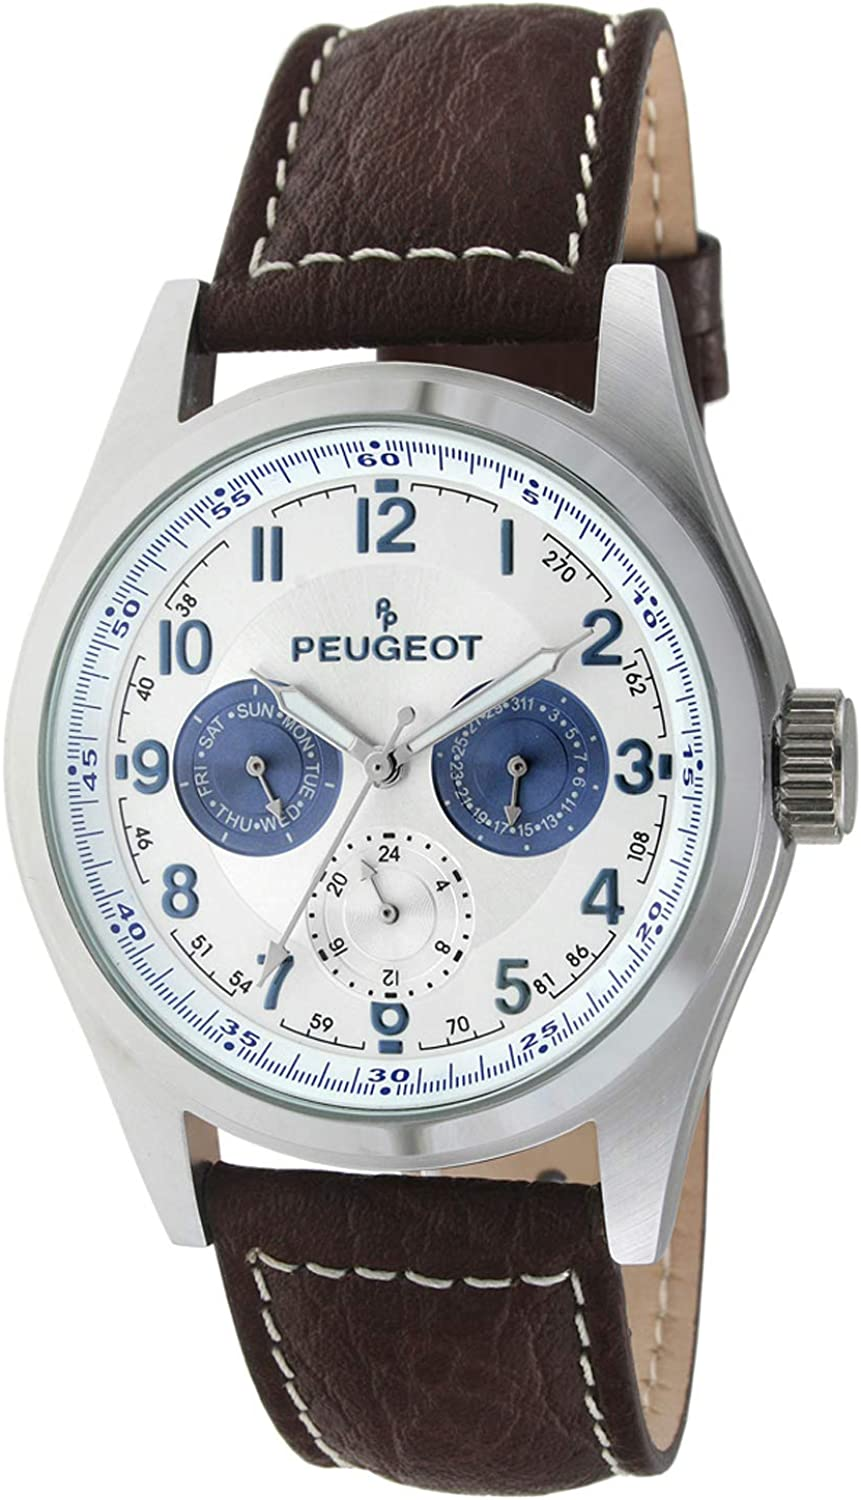 Peugeot Men's Multi-Function Chronograph Quartz Wrist Watch with Water Resistant Stainless Steel Case